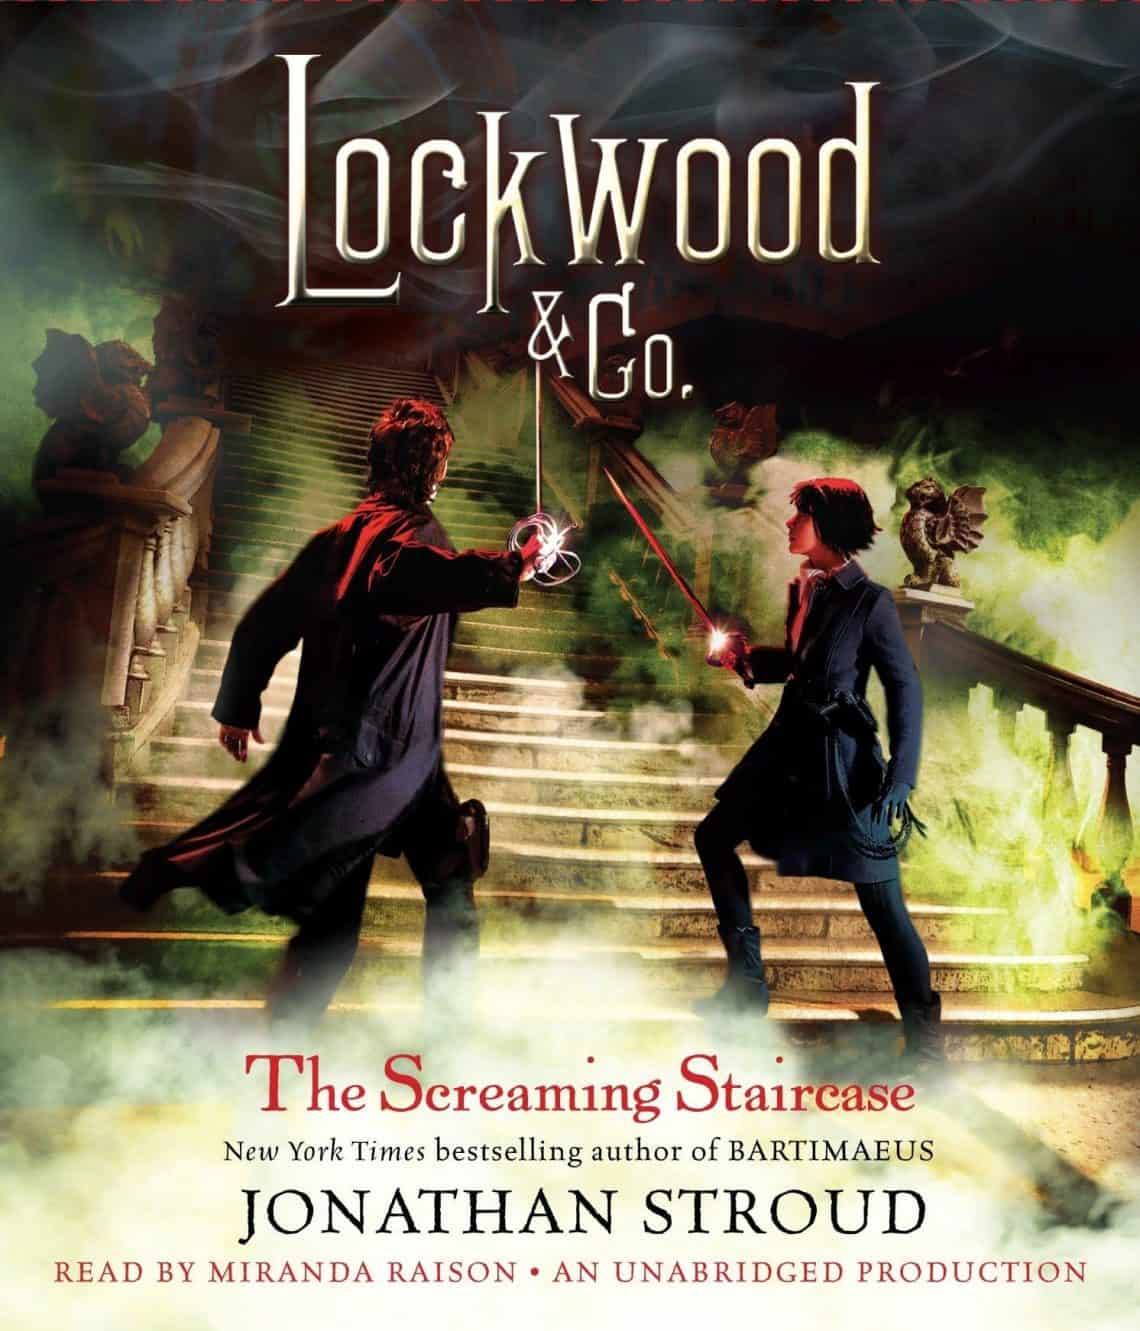 Jonathan Stroud - The Screaming Staircase Audiobook Free Download and Listen